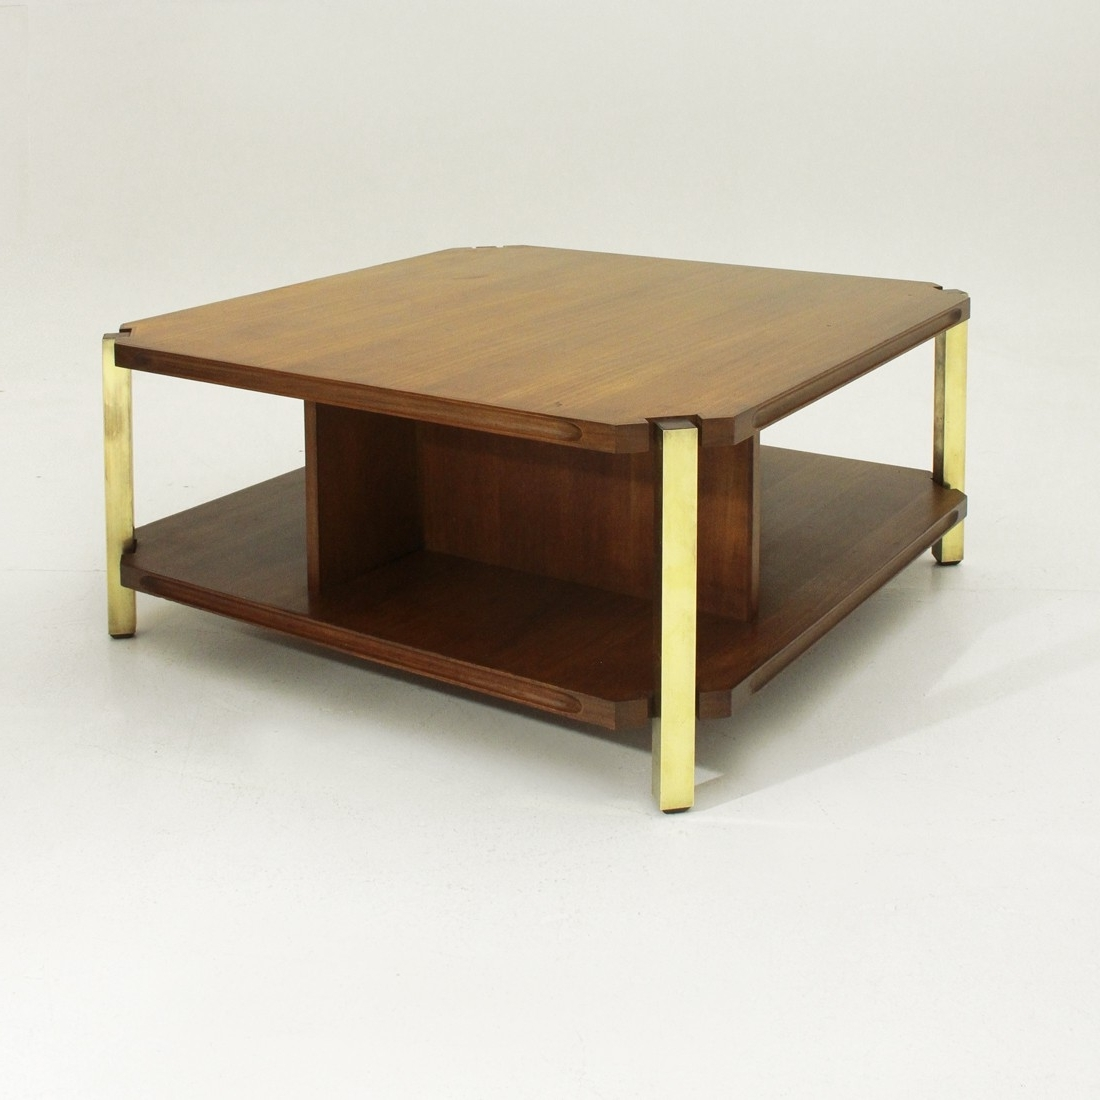 Most Up To Date Rectangular Coffee Tables With Brass Legs With Italian Teak Coffee Table With Brass Legs – 1960S – Design Market (View 13 of 20)